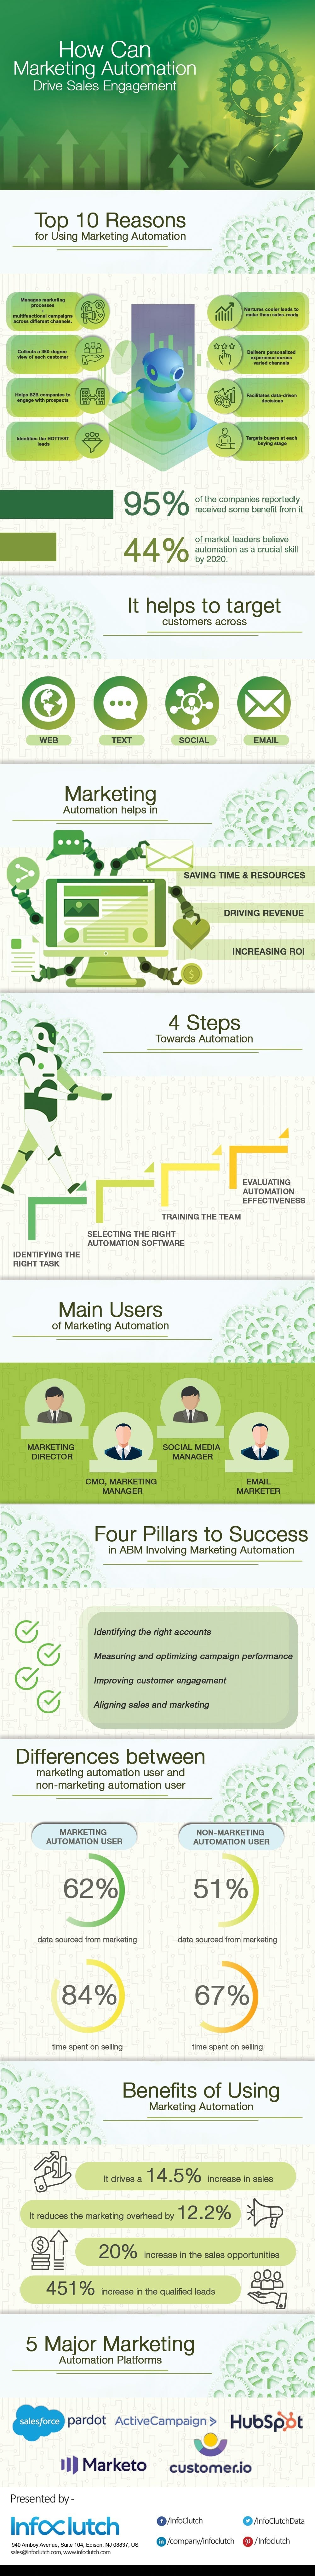 How can Marketing Automation drive sales engagement? #infographic